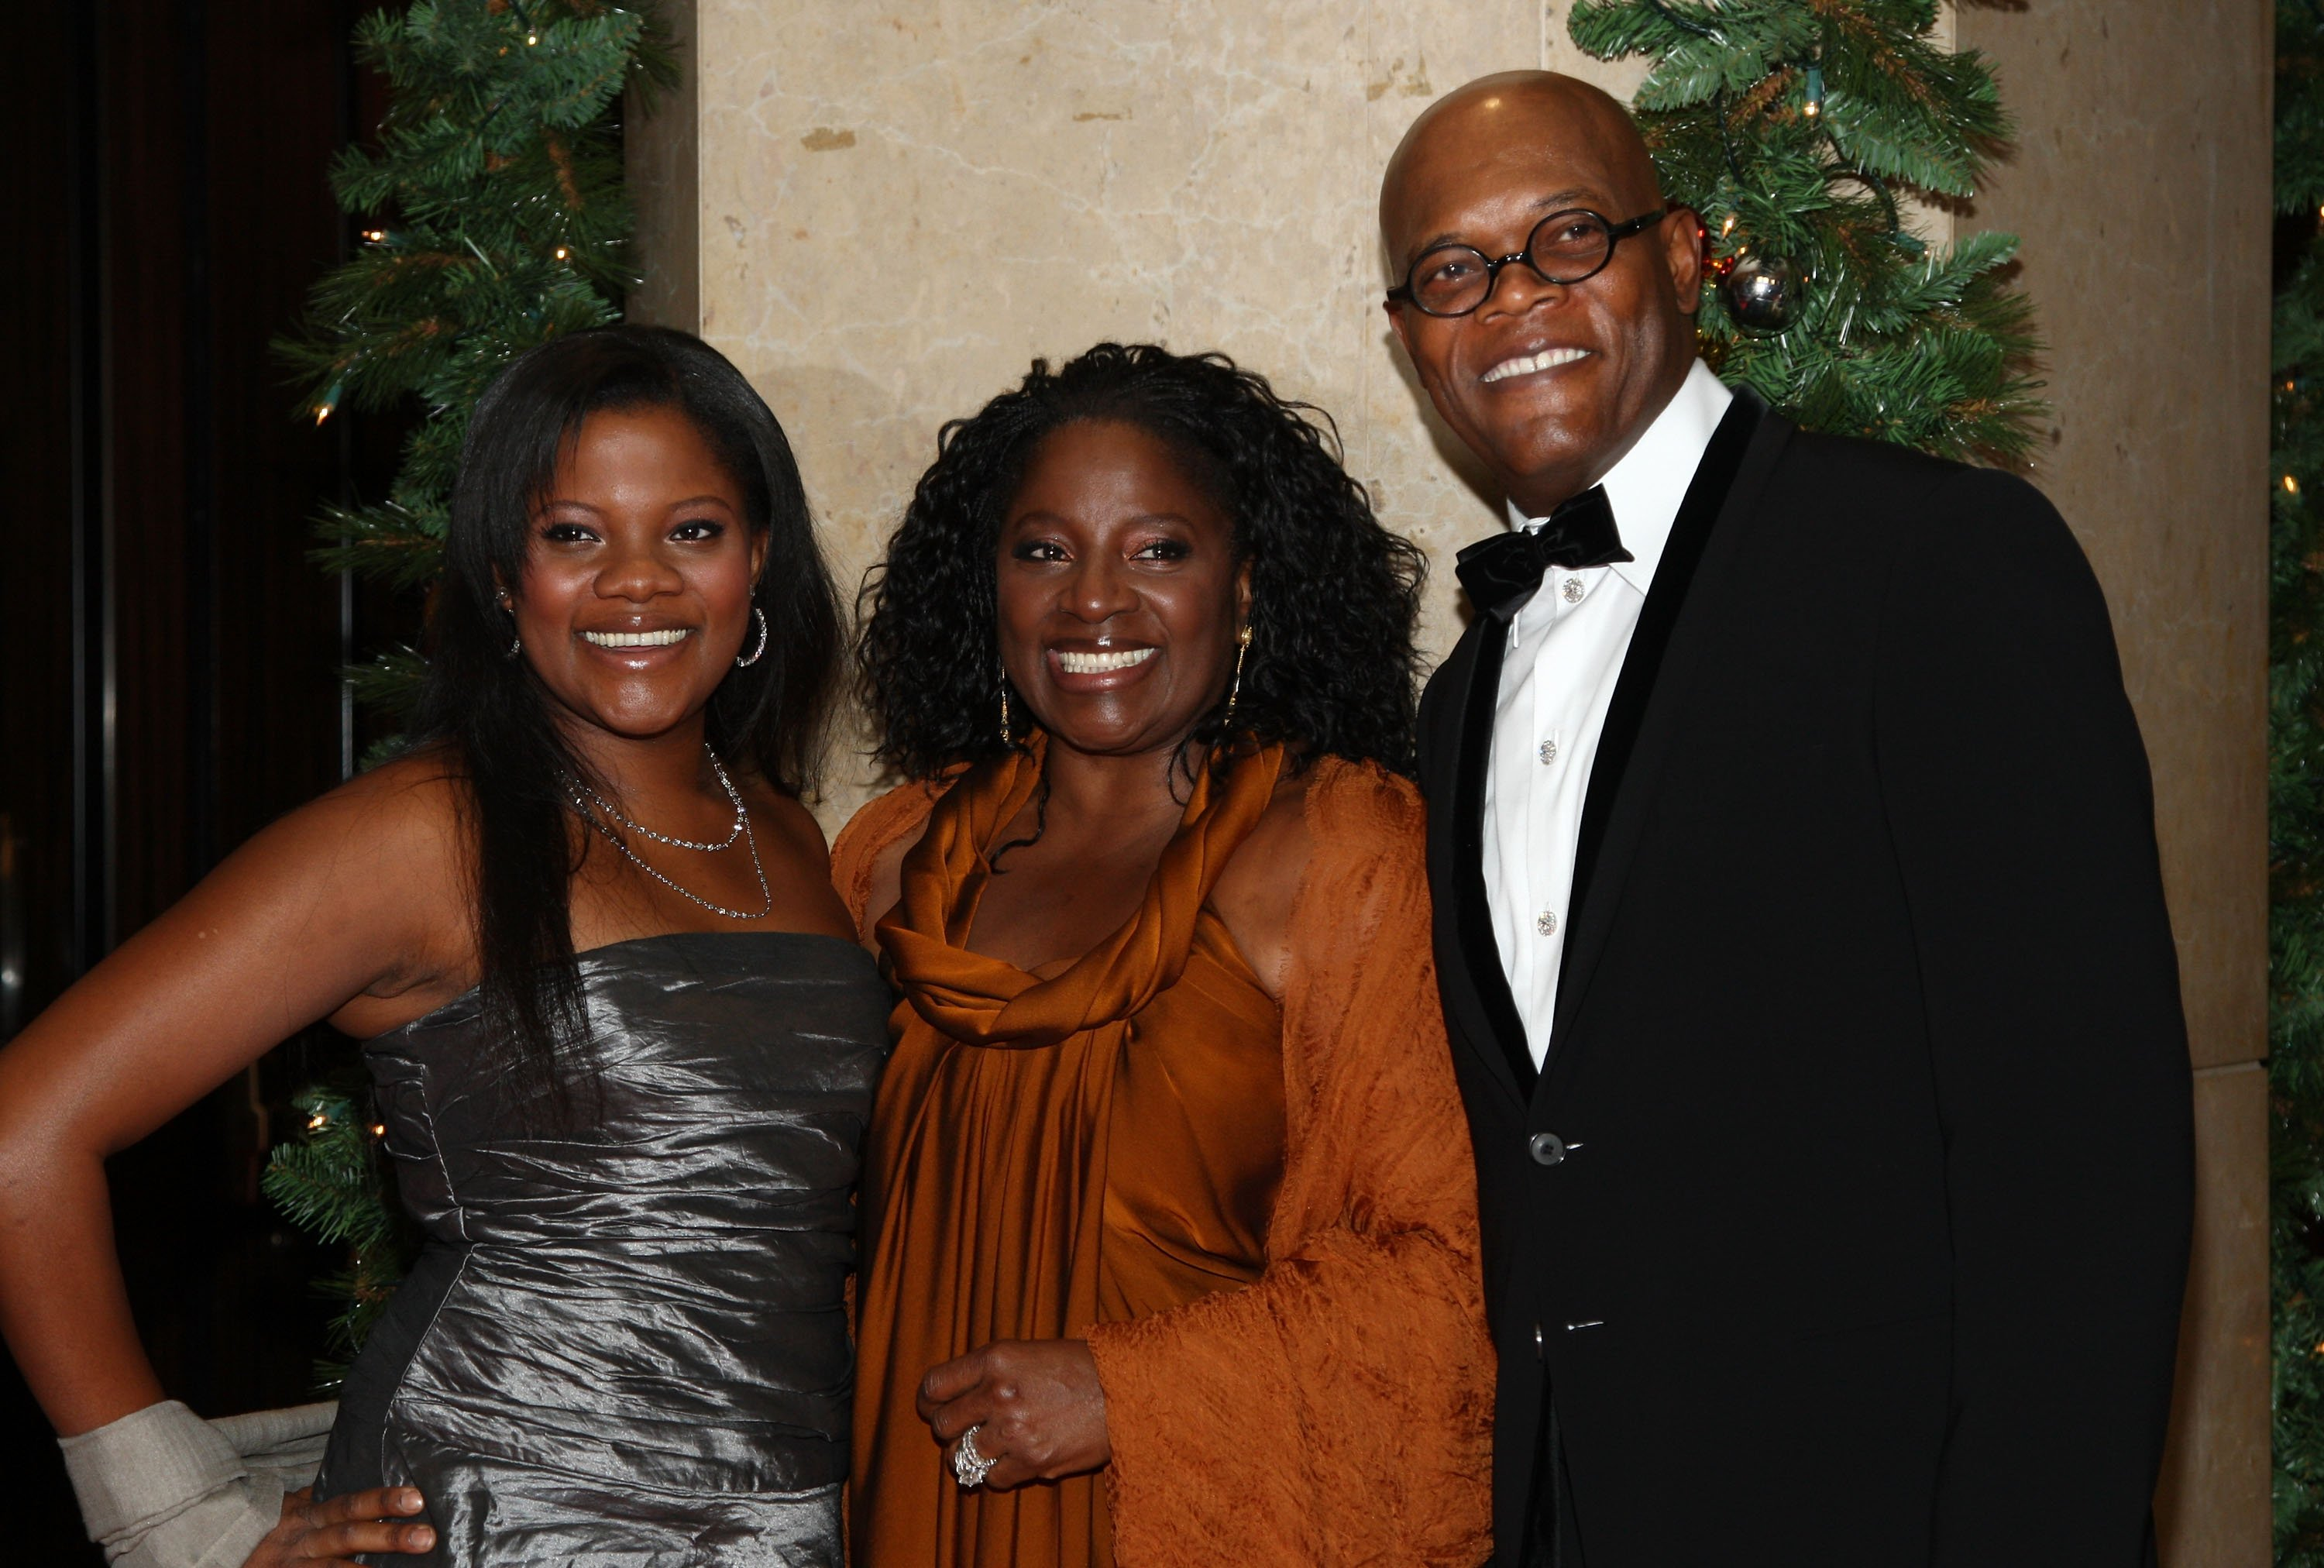 Samuel L. Jackson, LaTanya Richardson and Zoe Jackson arrive at the 23rd annual American Cinematheque show on December 1, 2008 | Photo: Getty Images